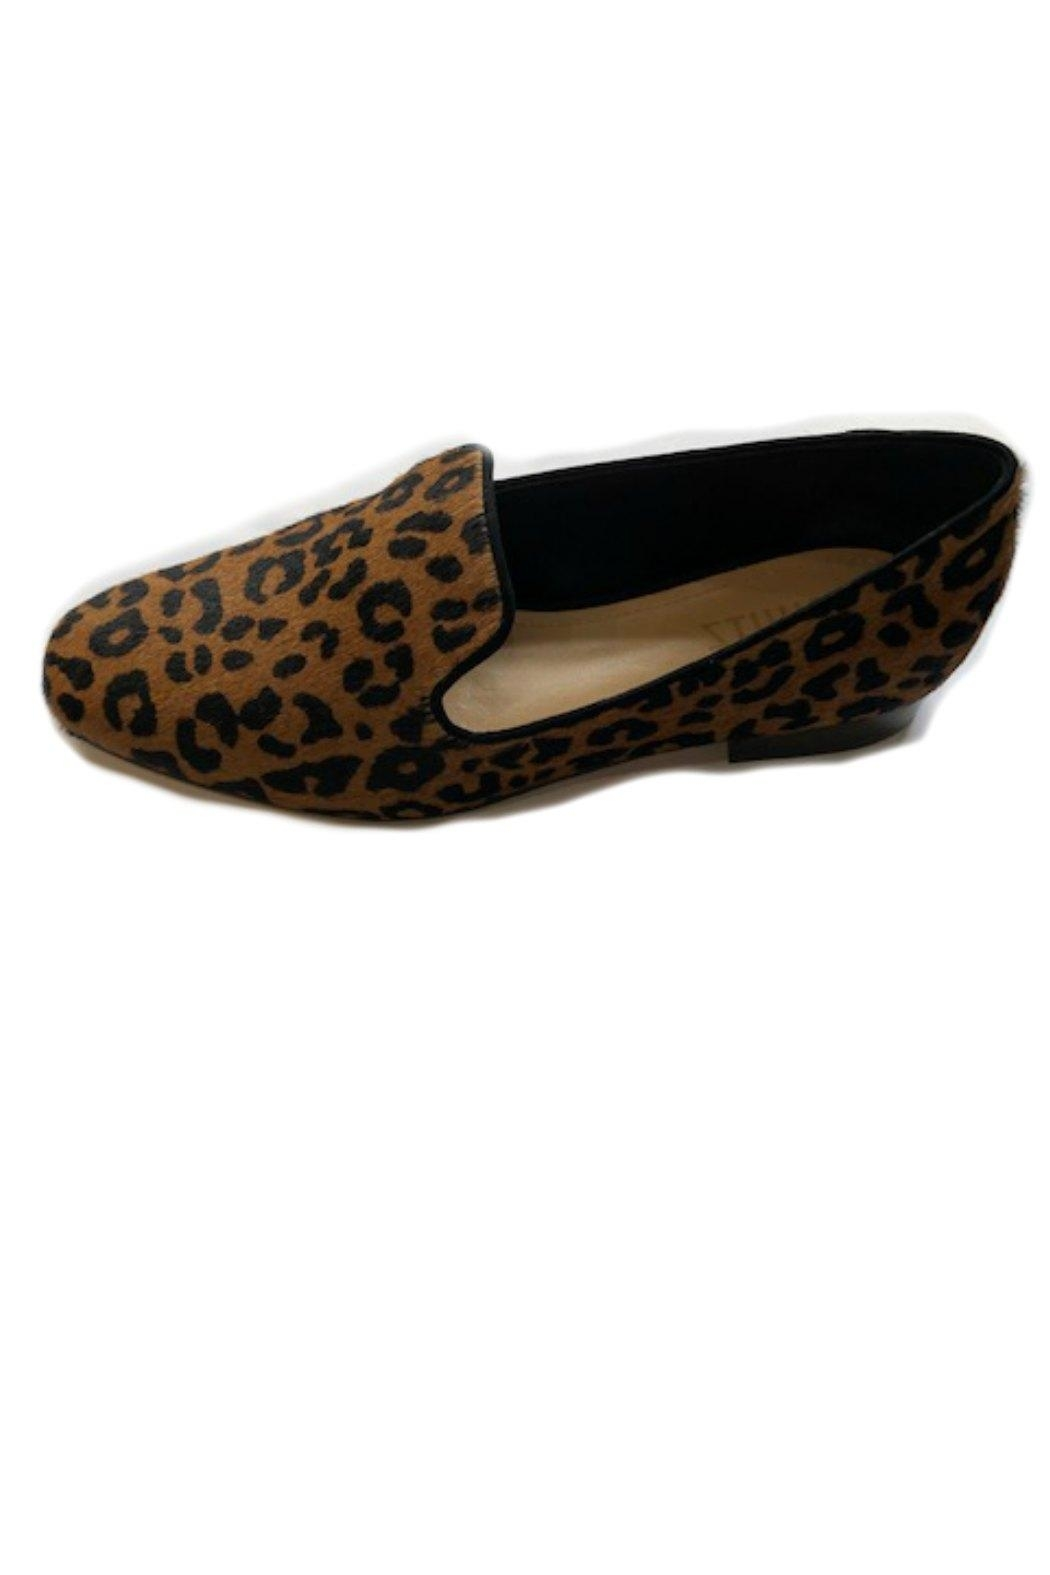 Schutz Leopard Calfhair Loafers - Main Image